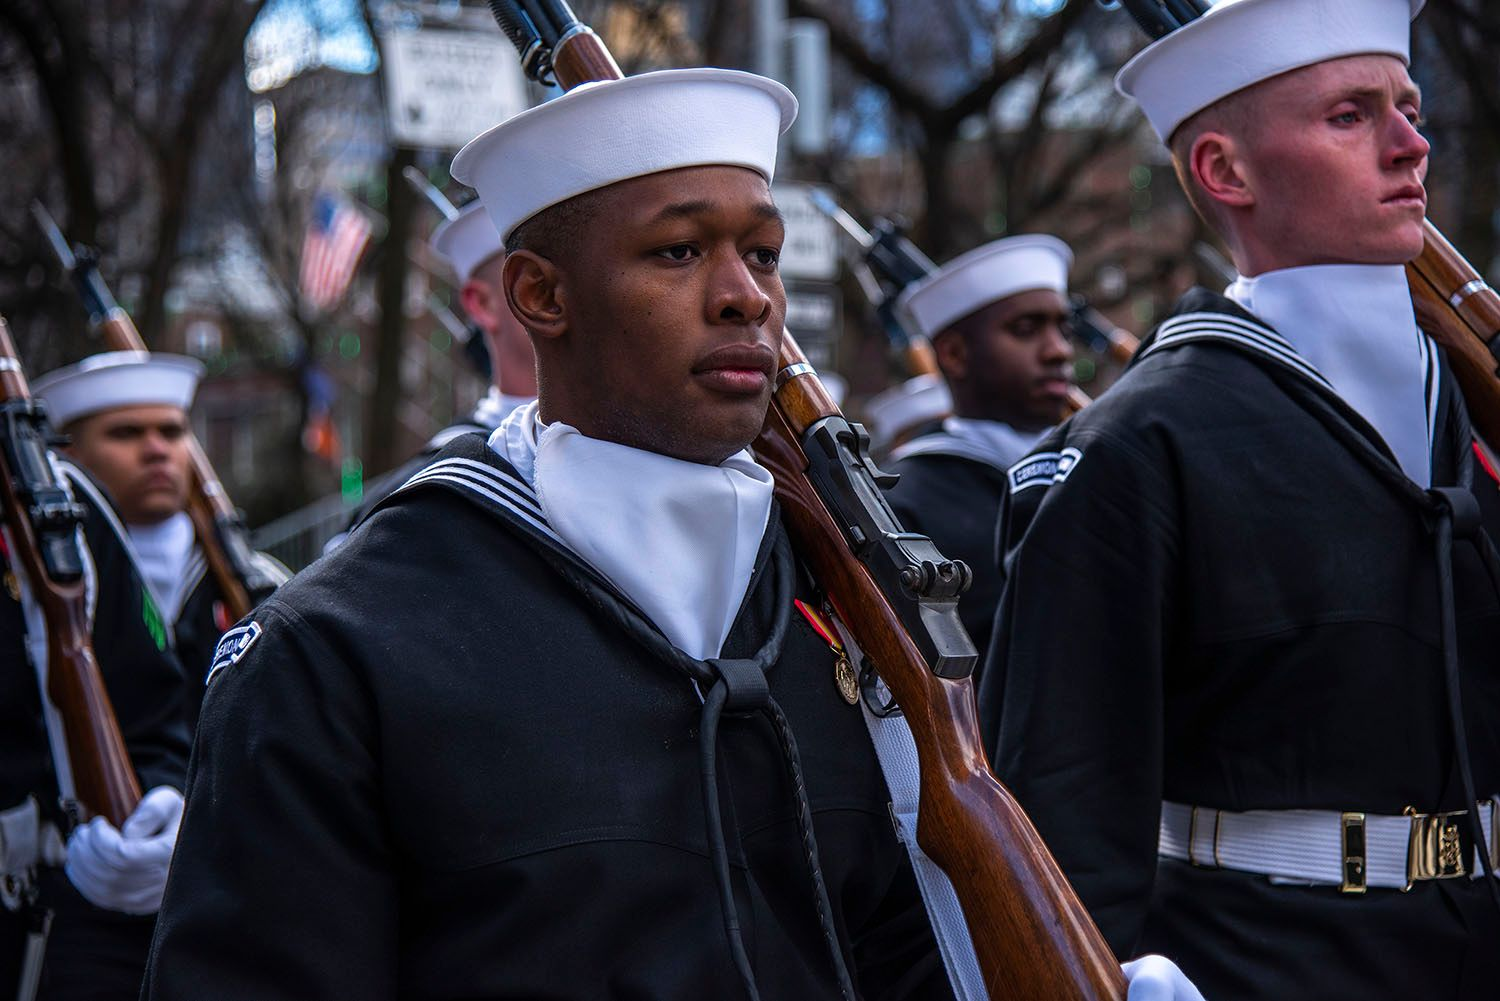 Sailors Marching